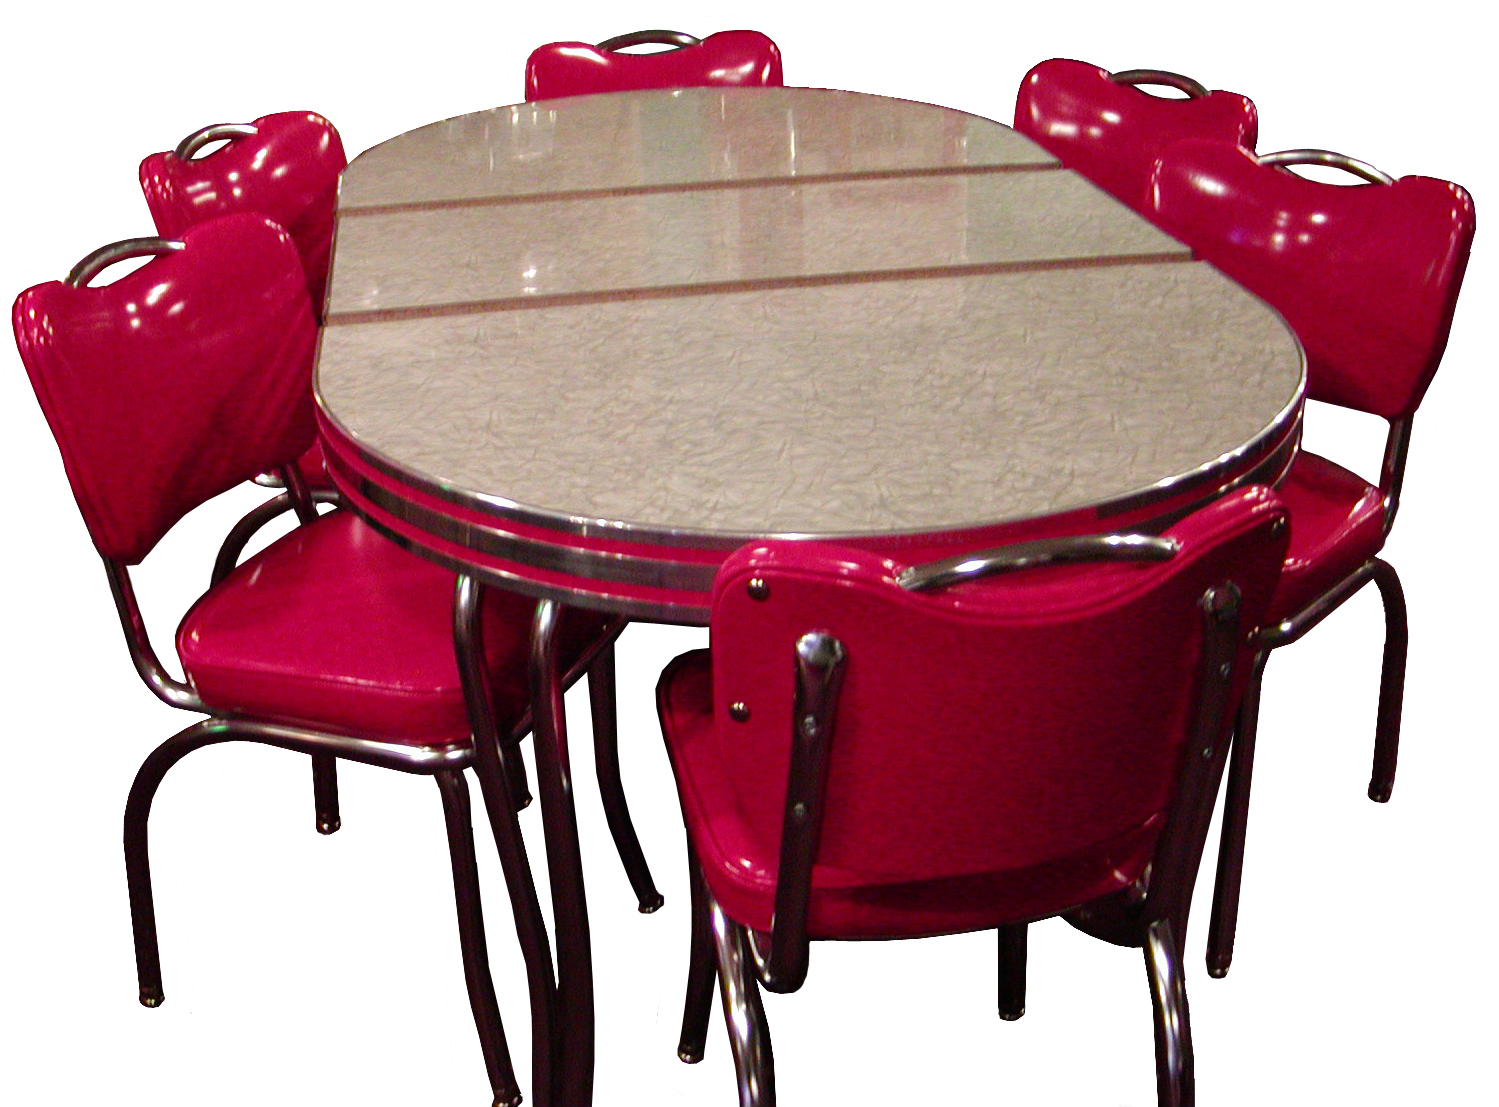 vintage red table jpg 422x640